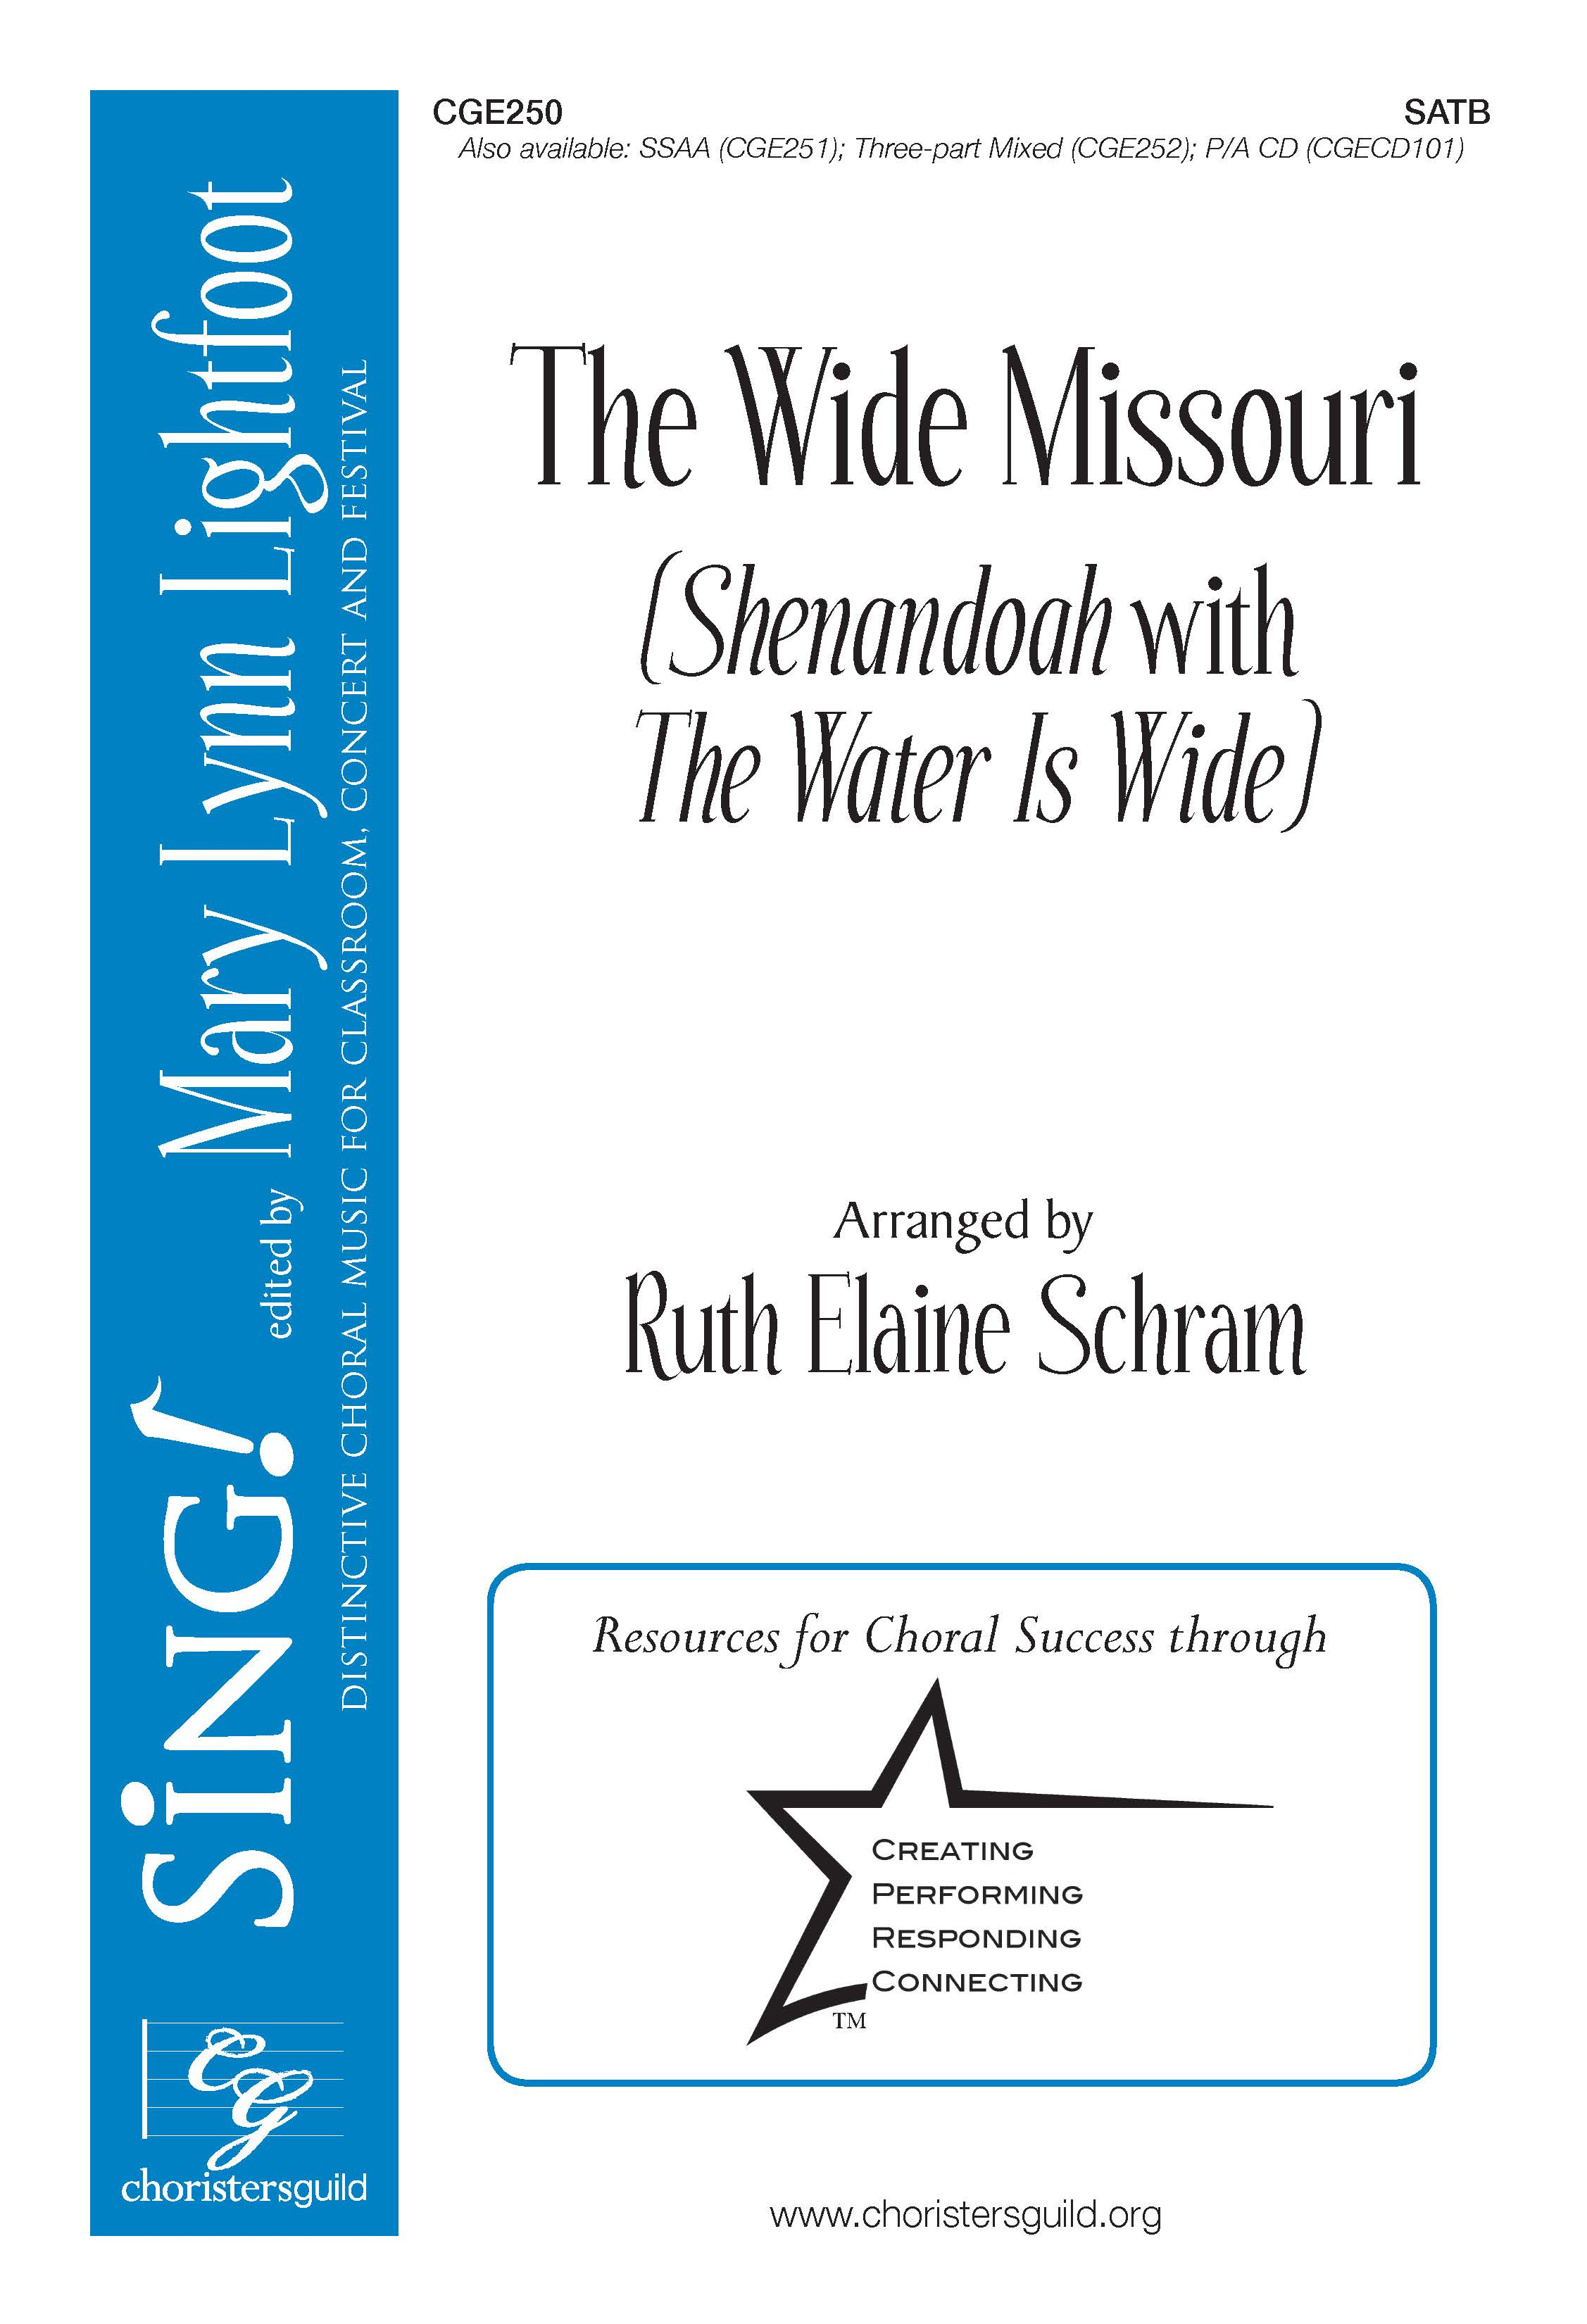 The Wide Missouri SATB